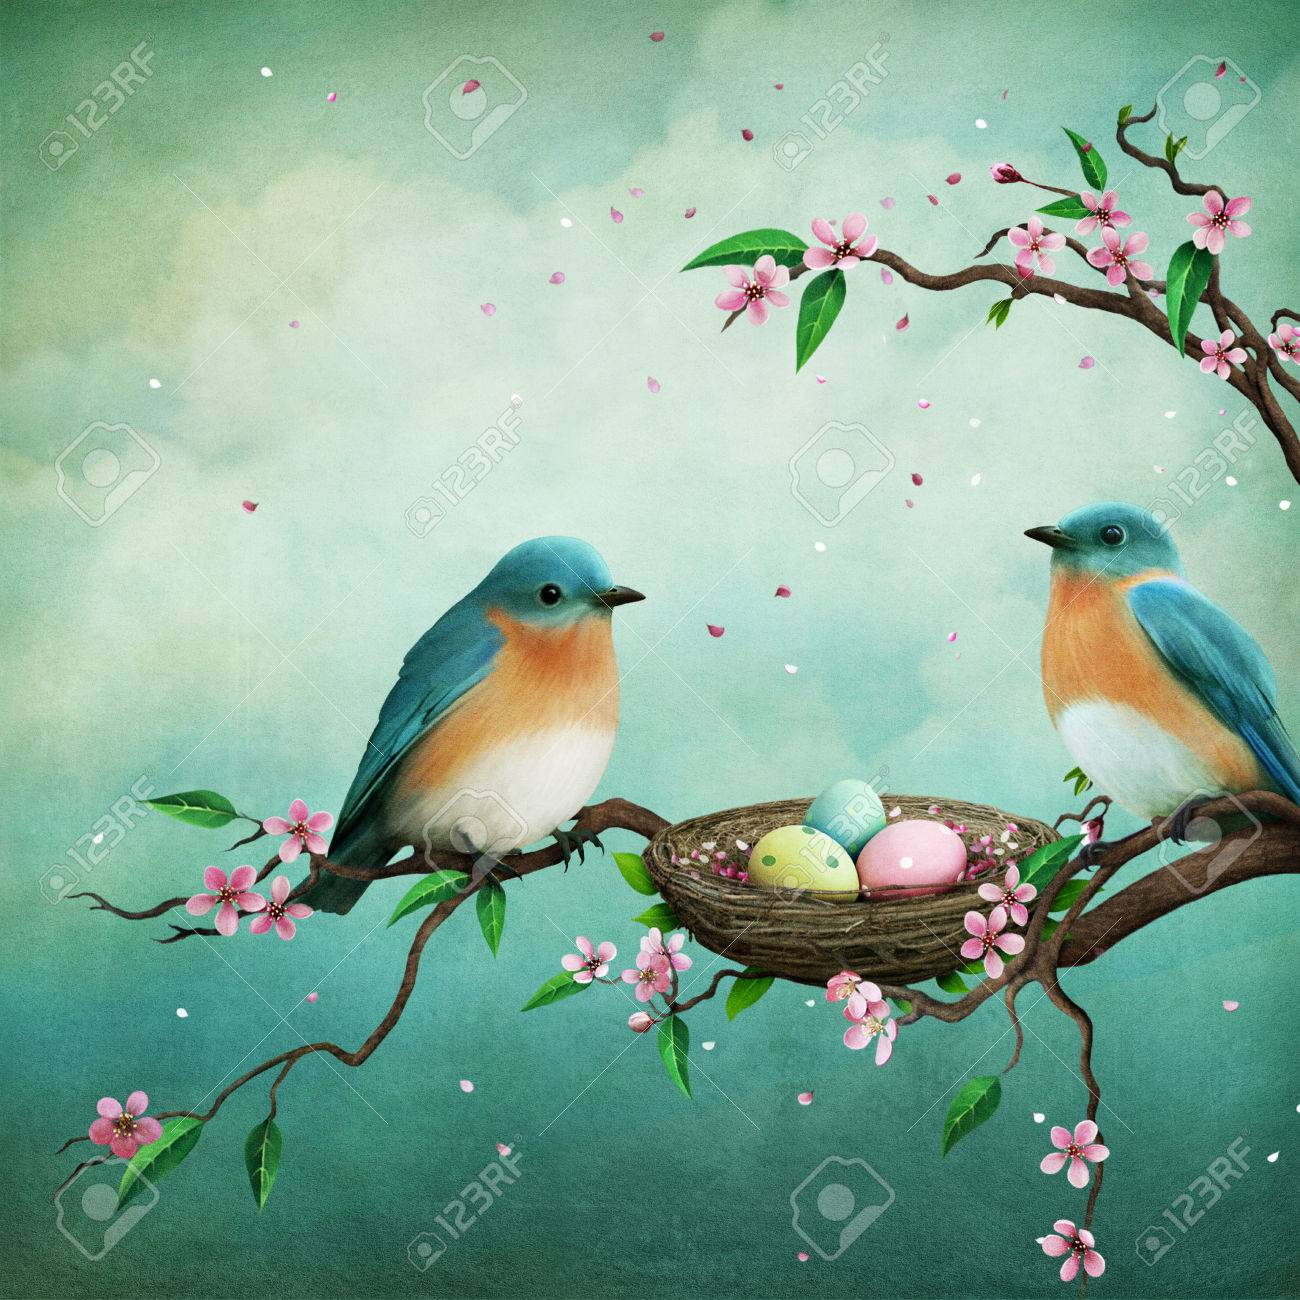 Greeting Card Or Illustration For Easter With Blue Birds And Stock